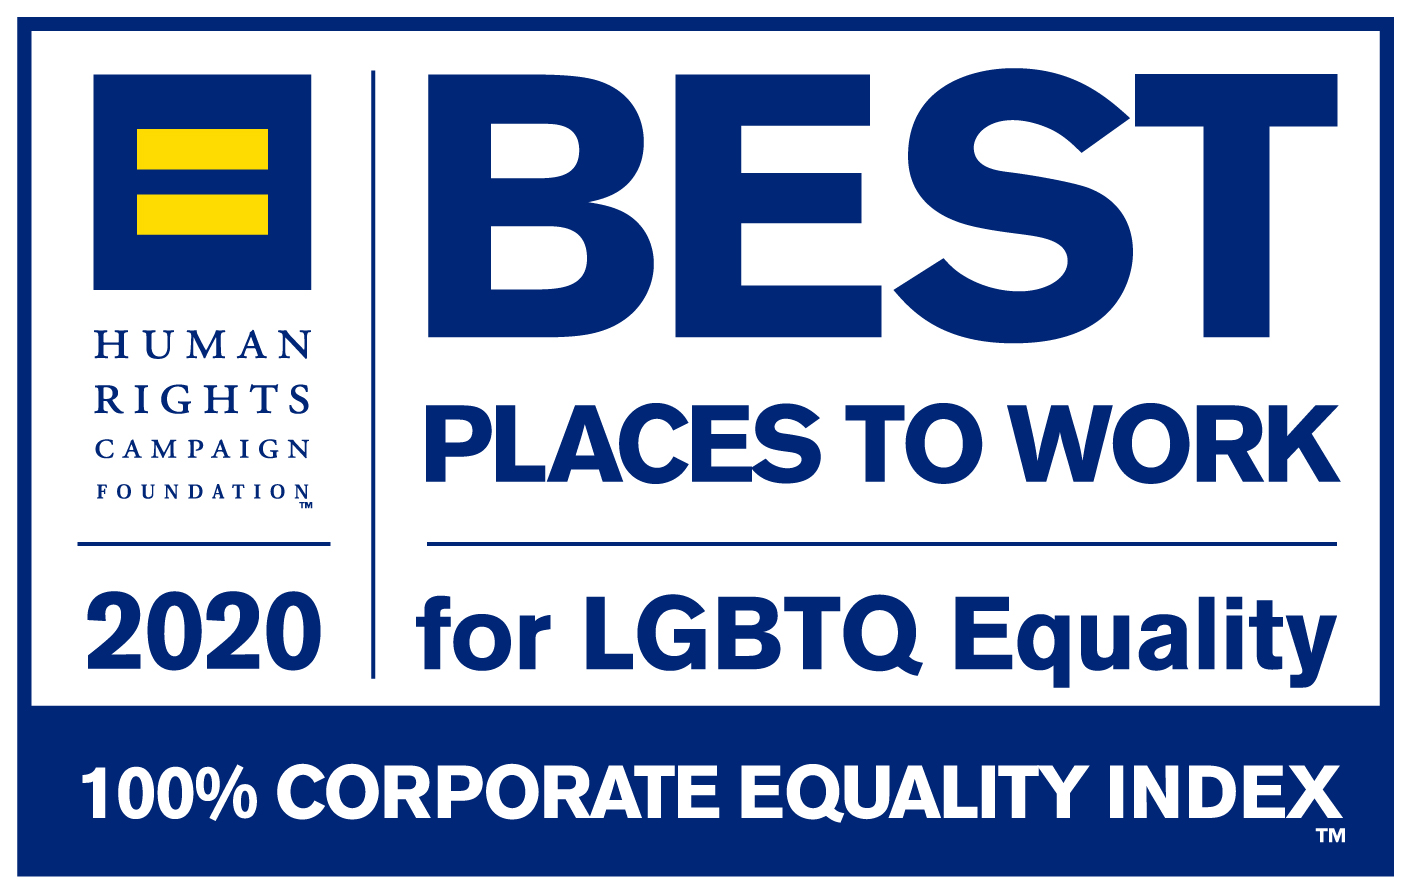 Human Rights Campaign Corporate Equality Index Best Places to Work for LGBTQ Equality award